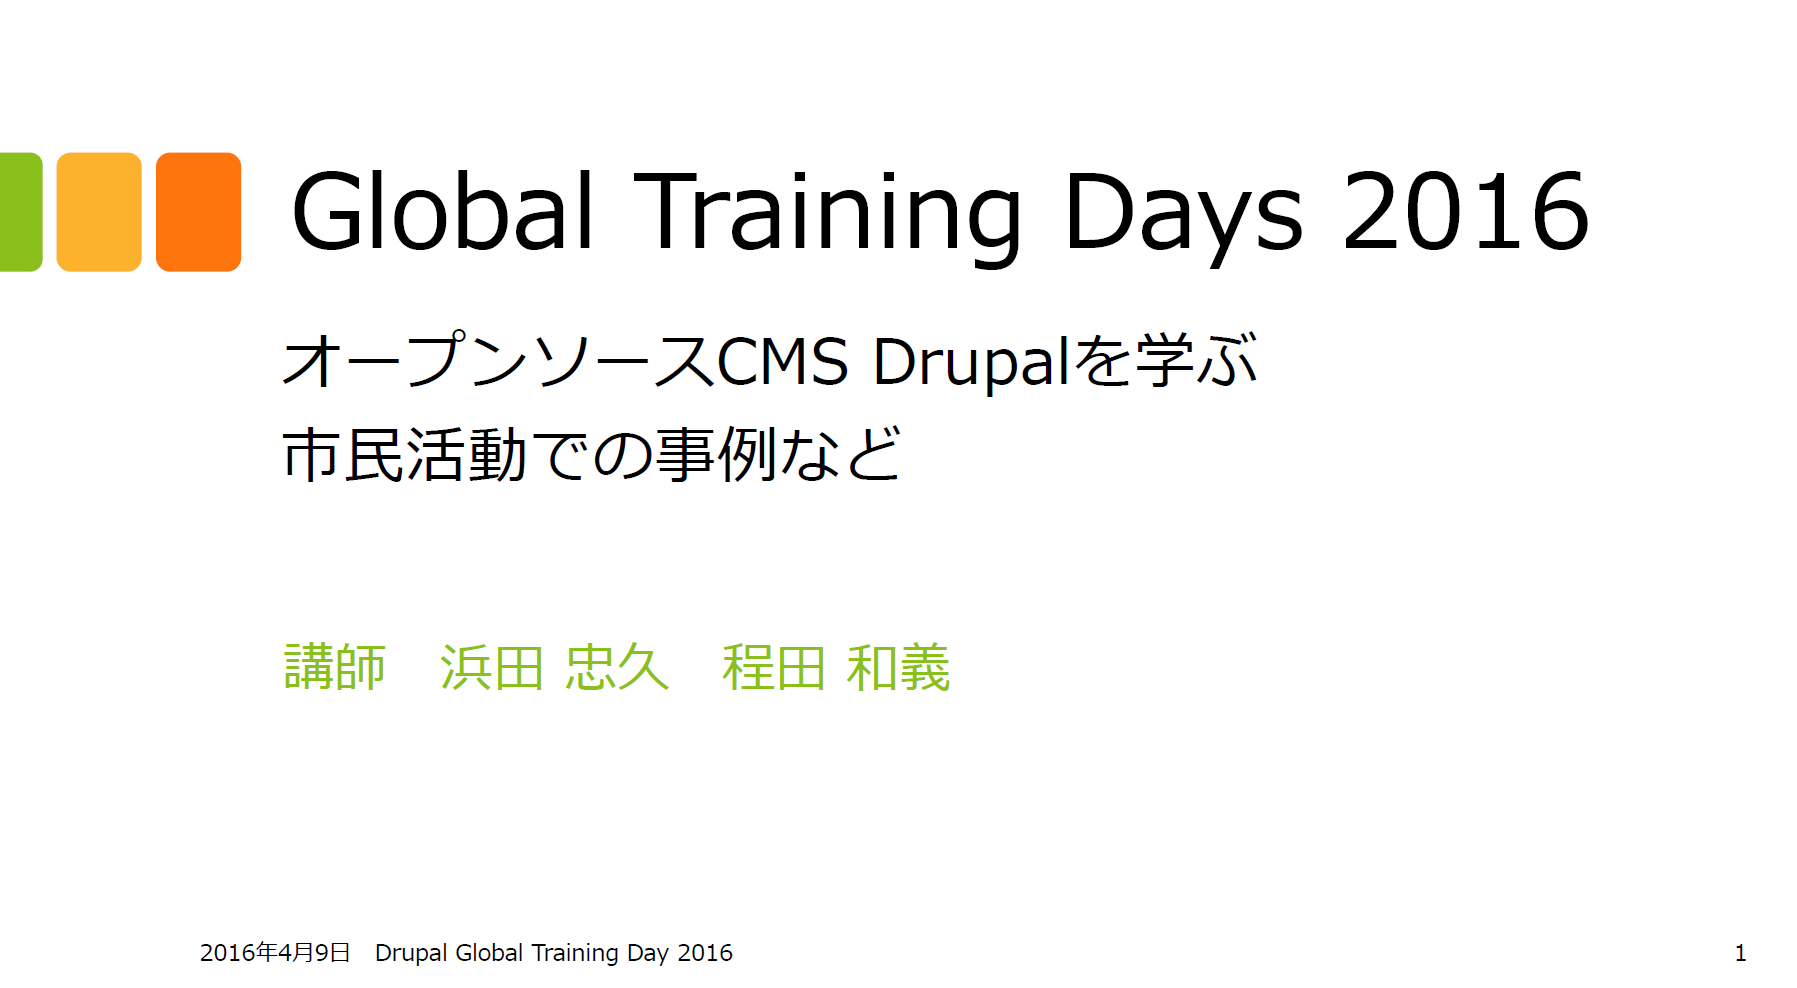 Drupal Global Training Day April 9, 2016